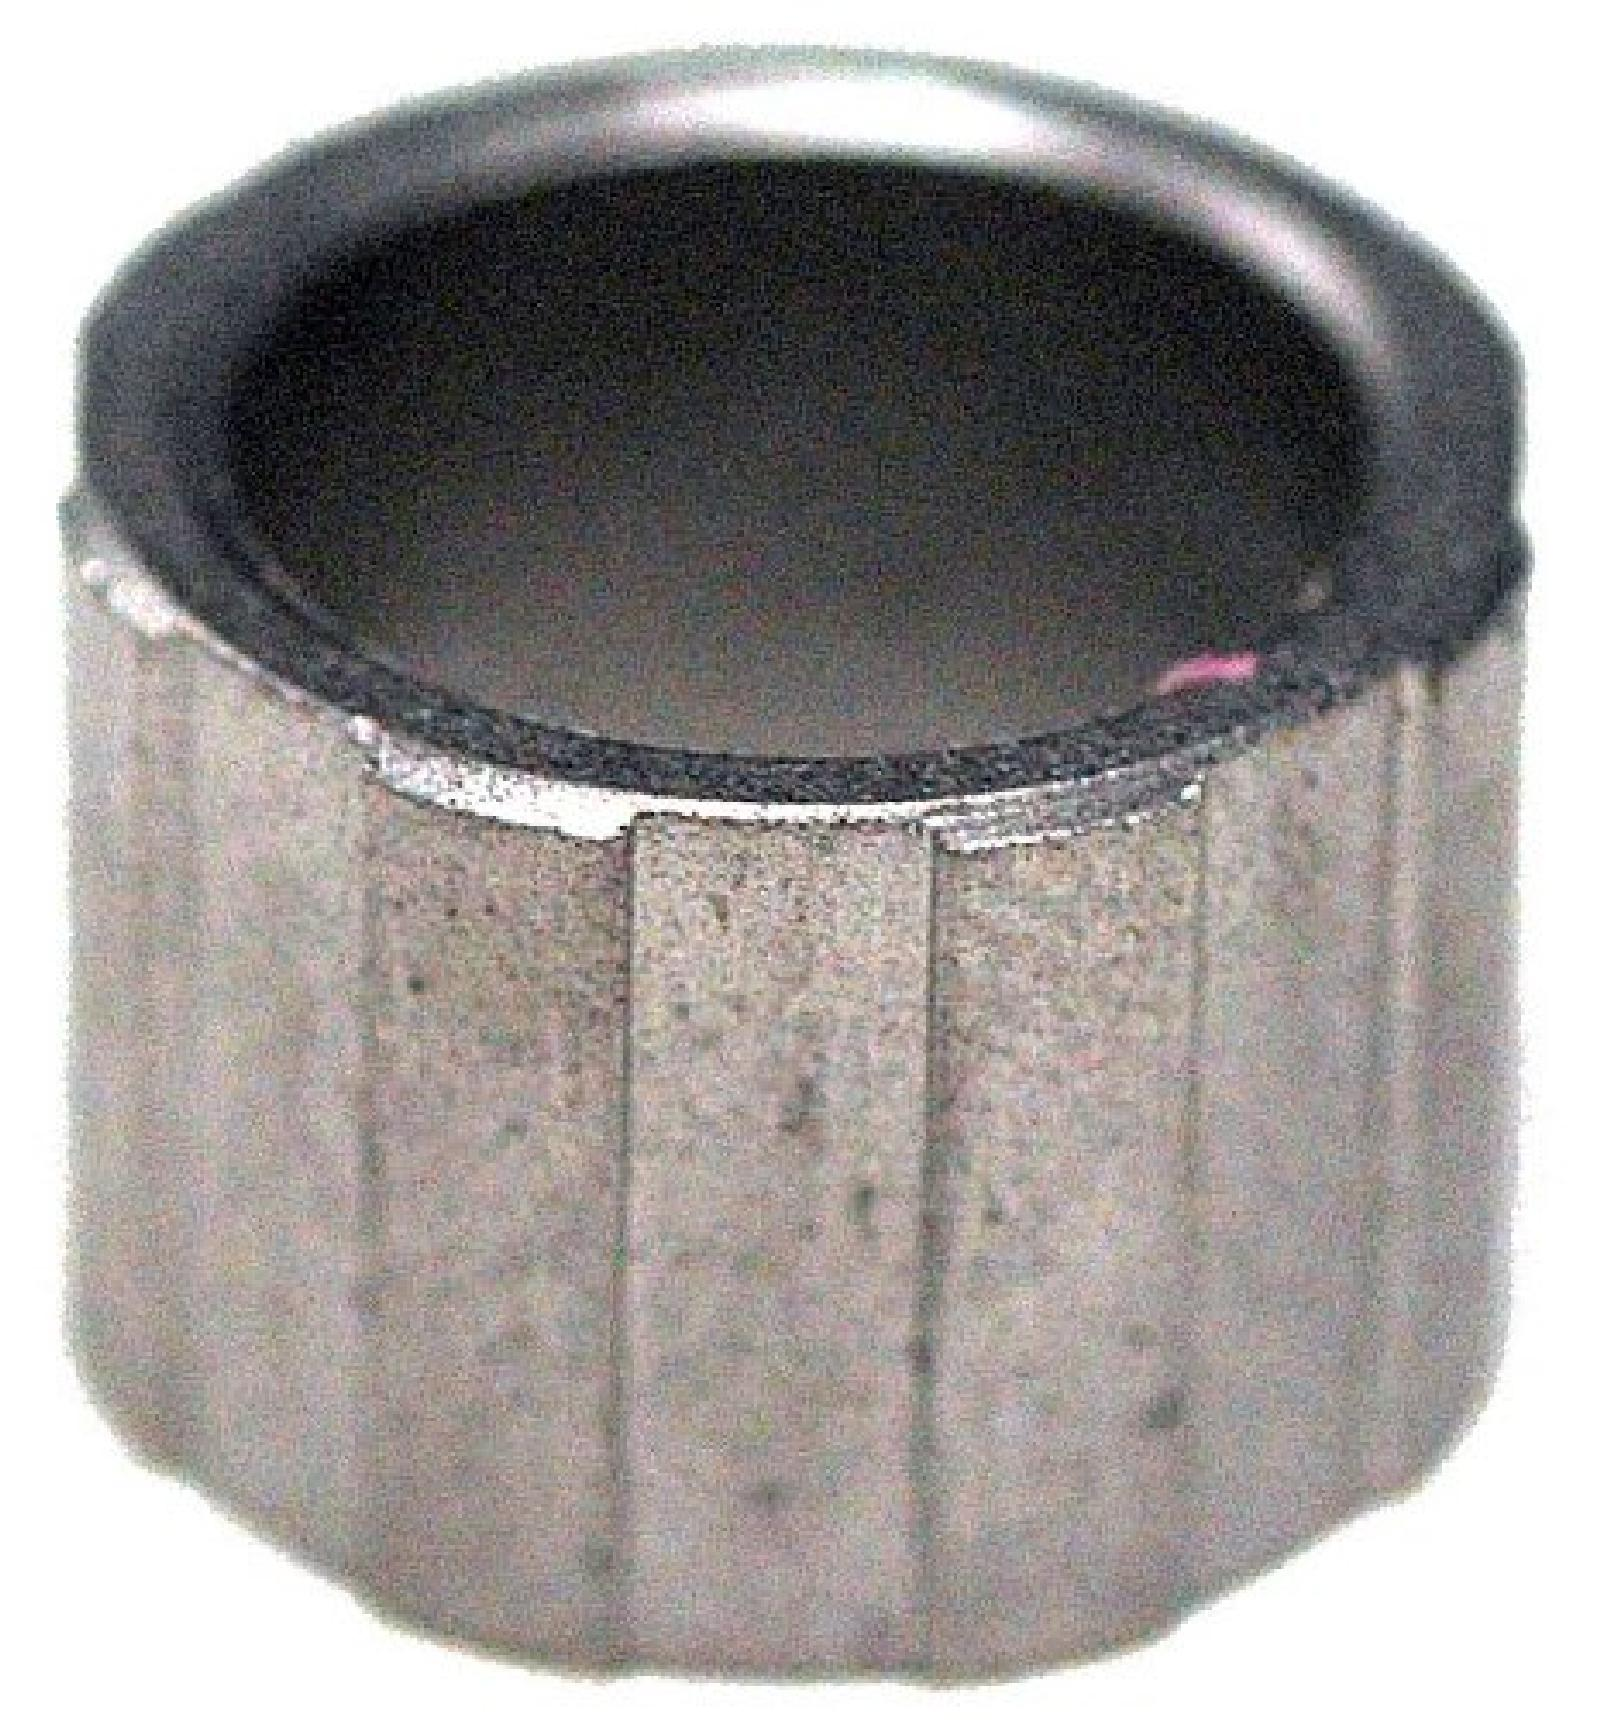 BUSHING IDLER PULLE part# 7852 by Rotary